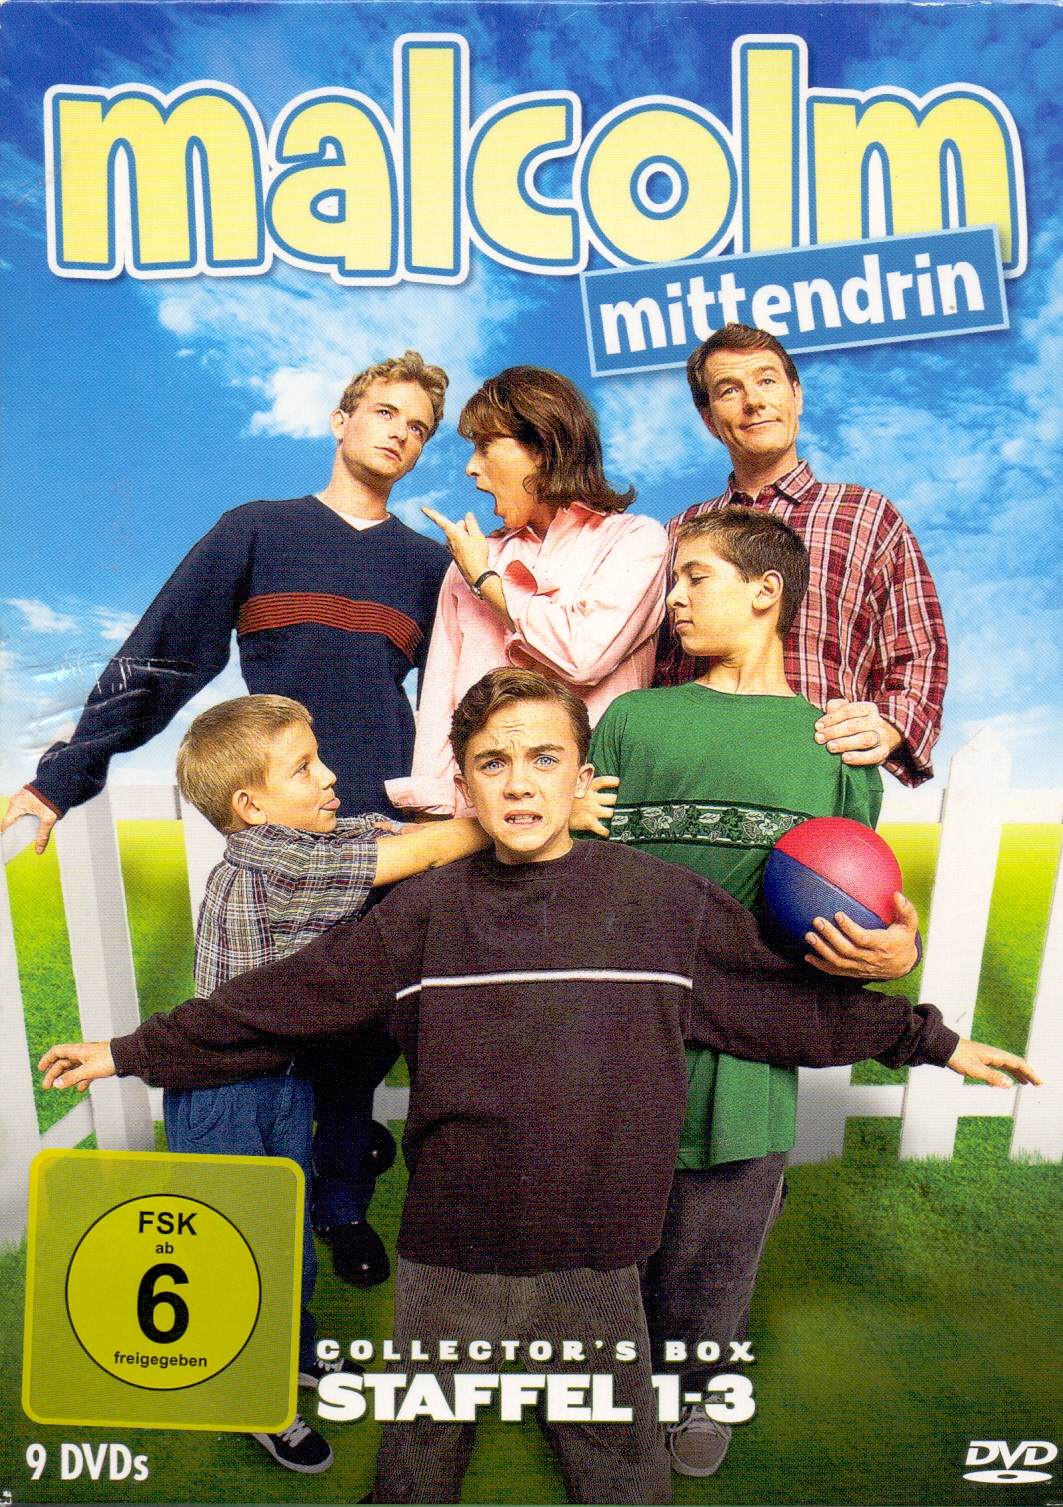 Malcolm mittendrin: Staffel 1-3 [9 DVDs, Collector´s Box]